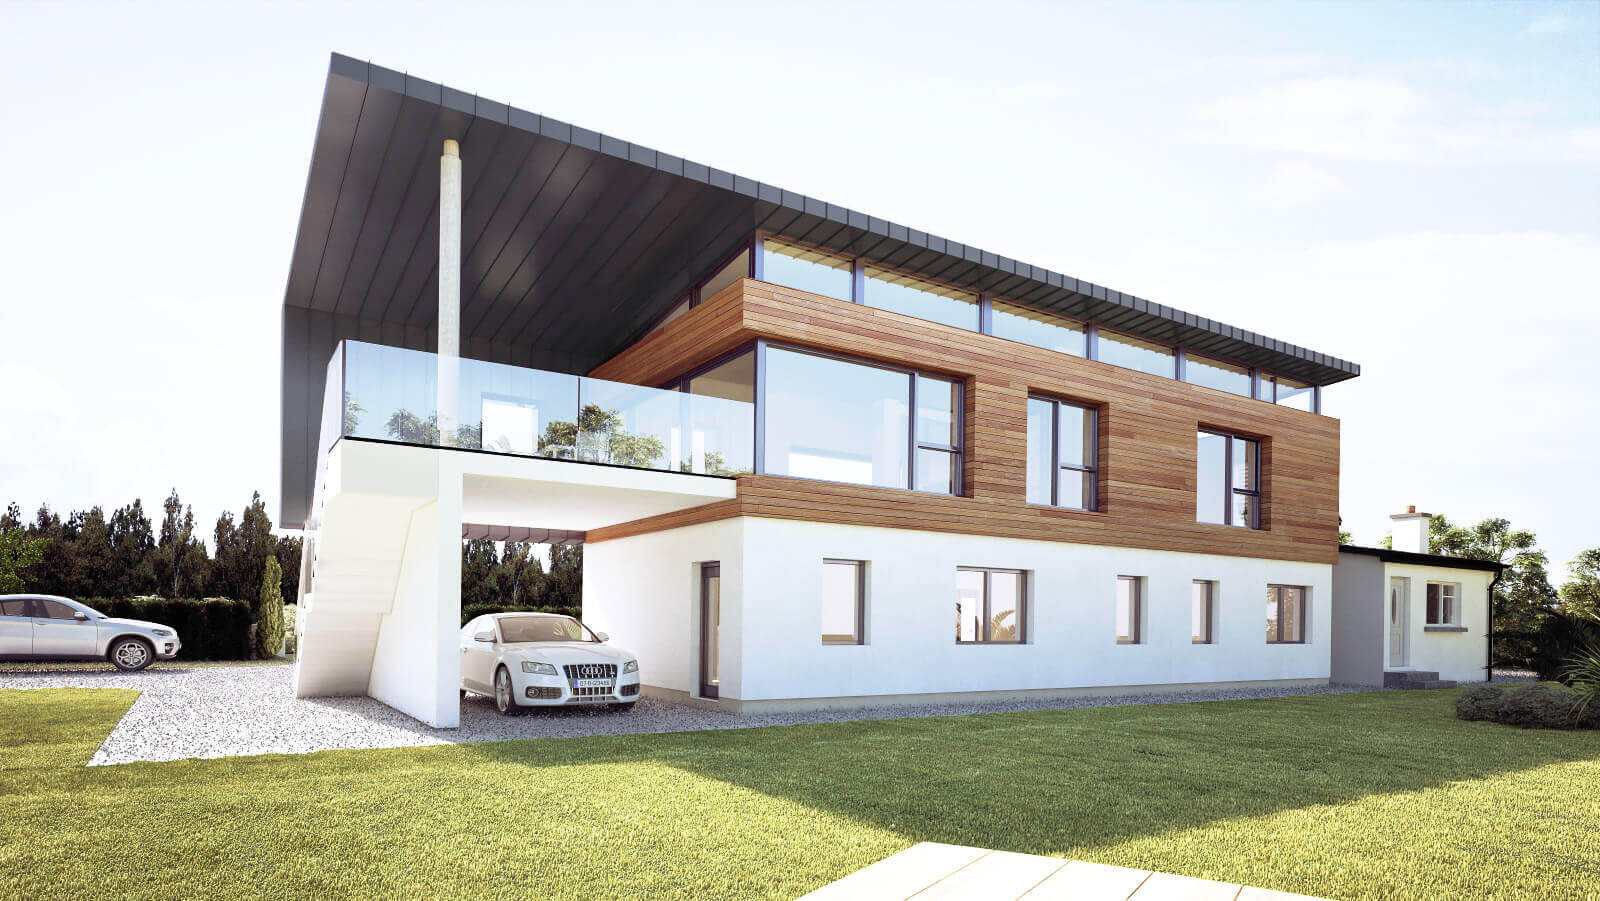 Two storey certified passive house with timber cladding to raised living area and external glass balustraded terrace with zinc overhang over car port.